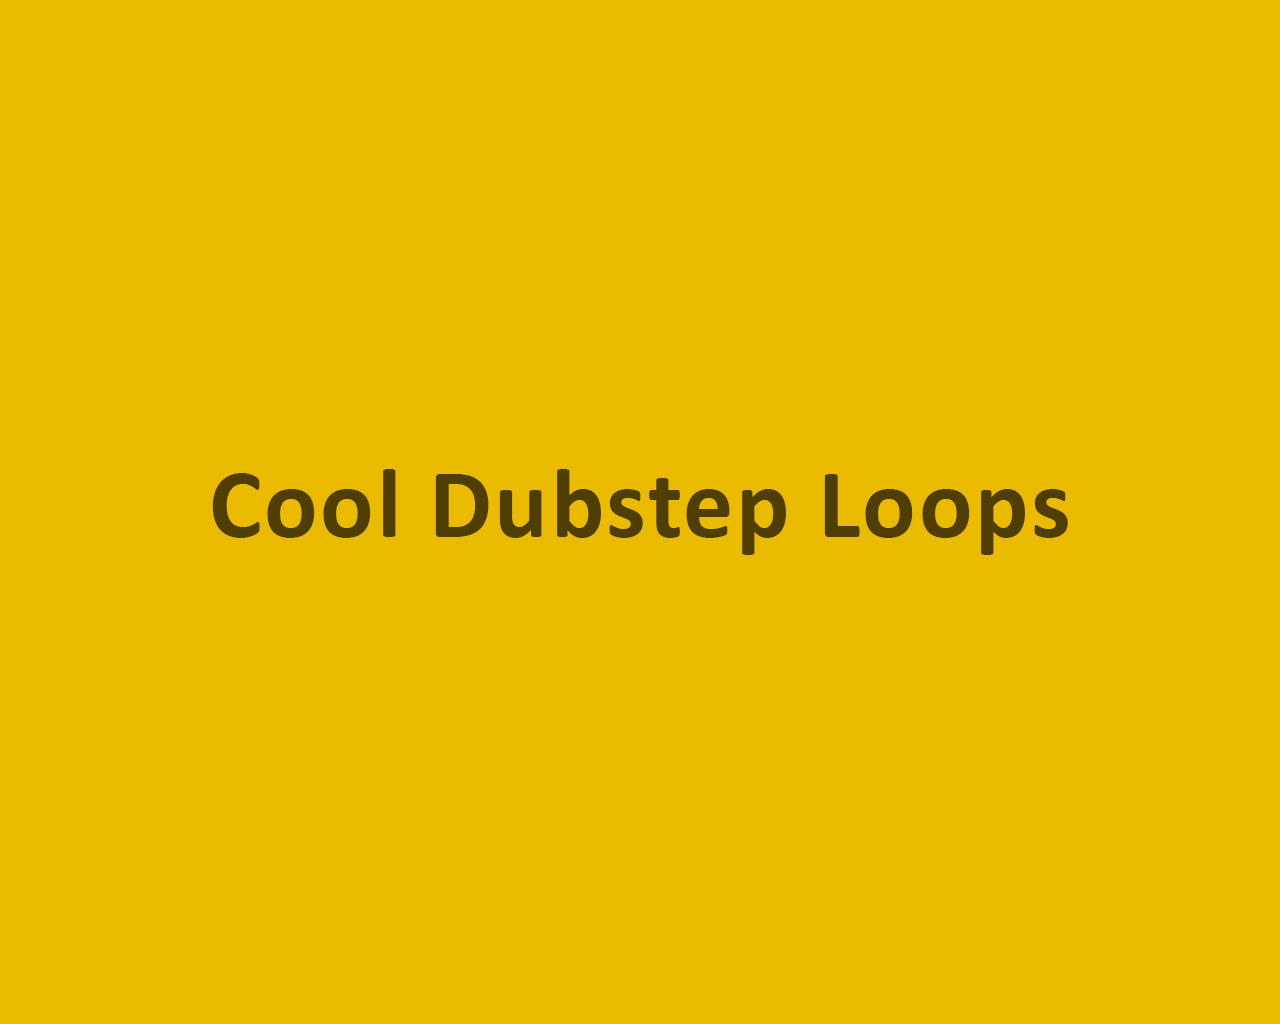 Cool Dubstep Loops by odiusfly - 105961